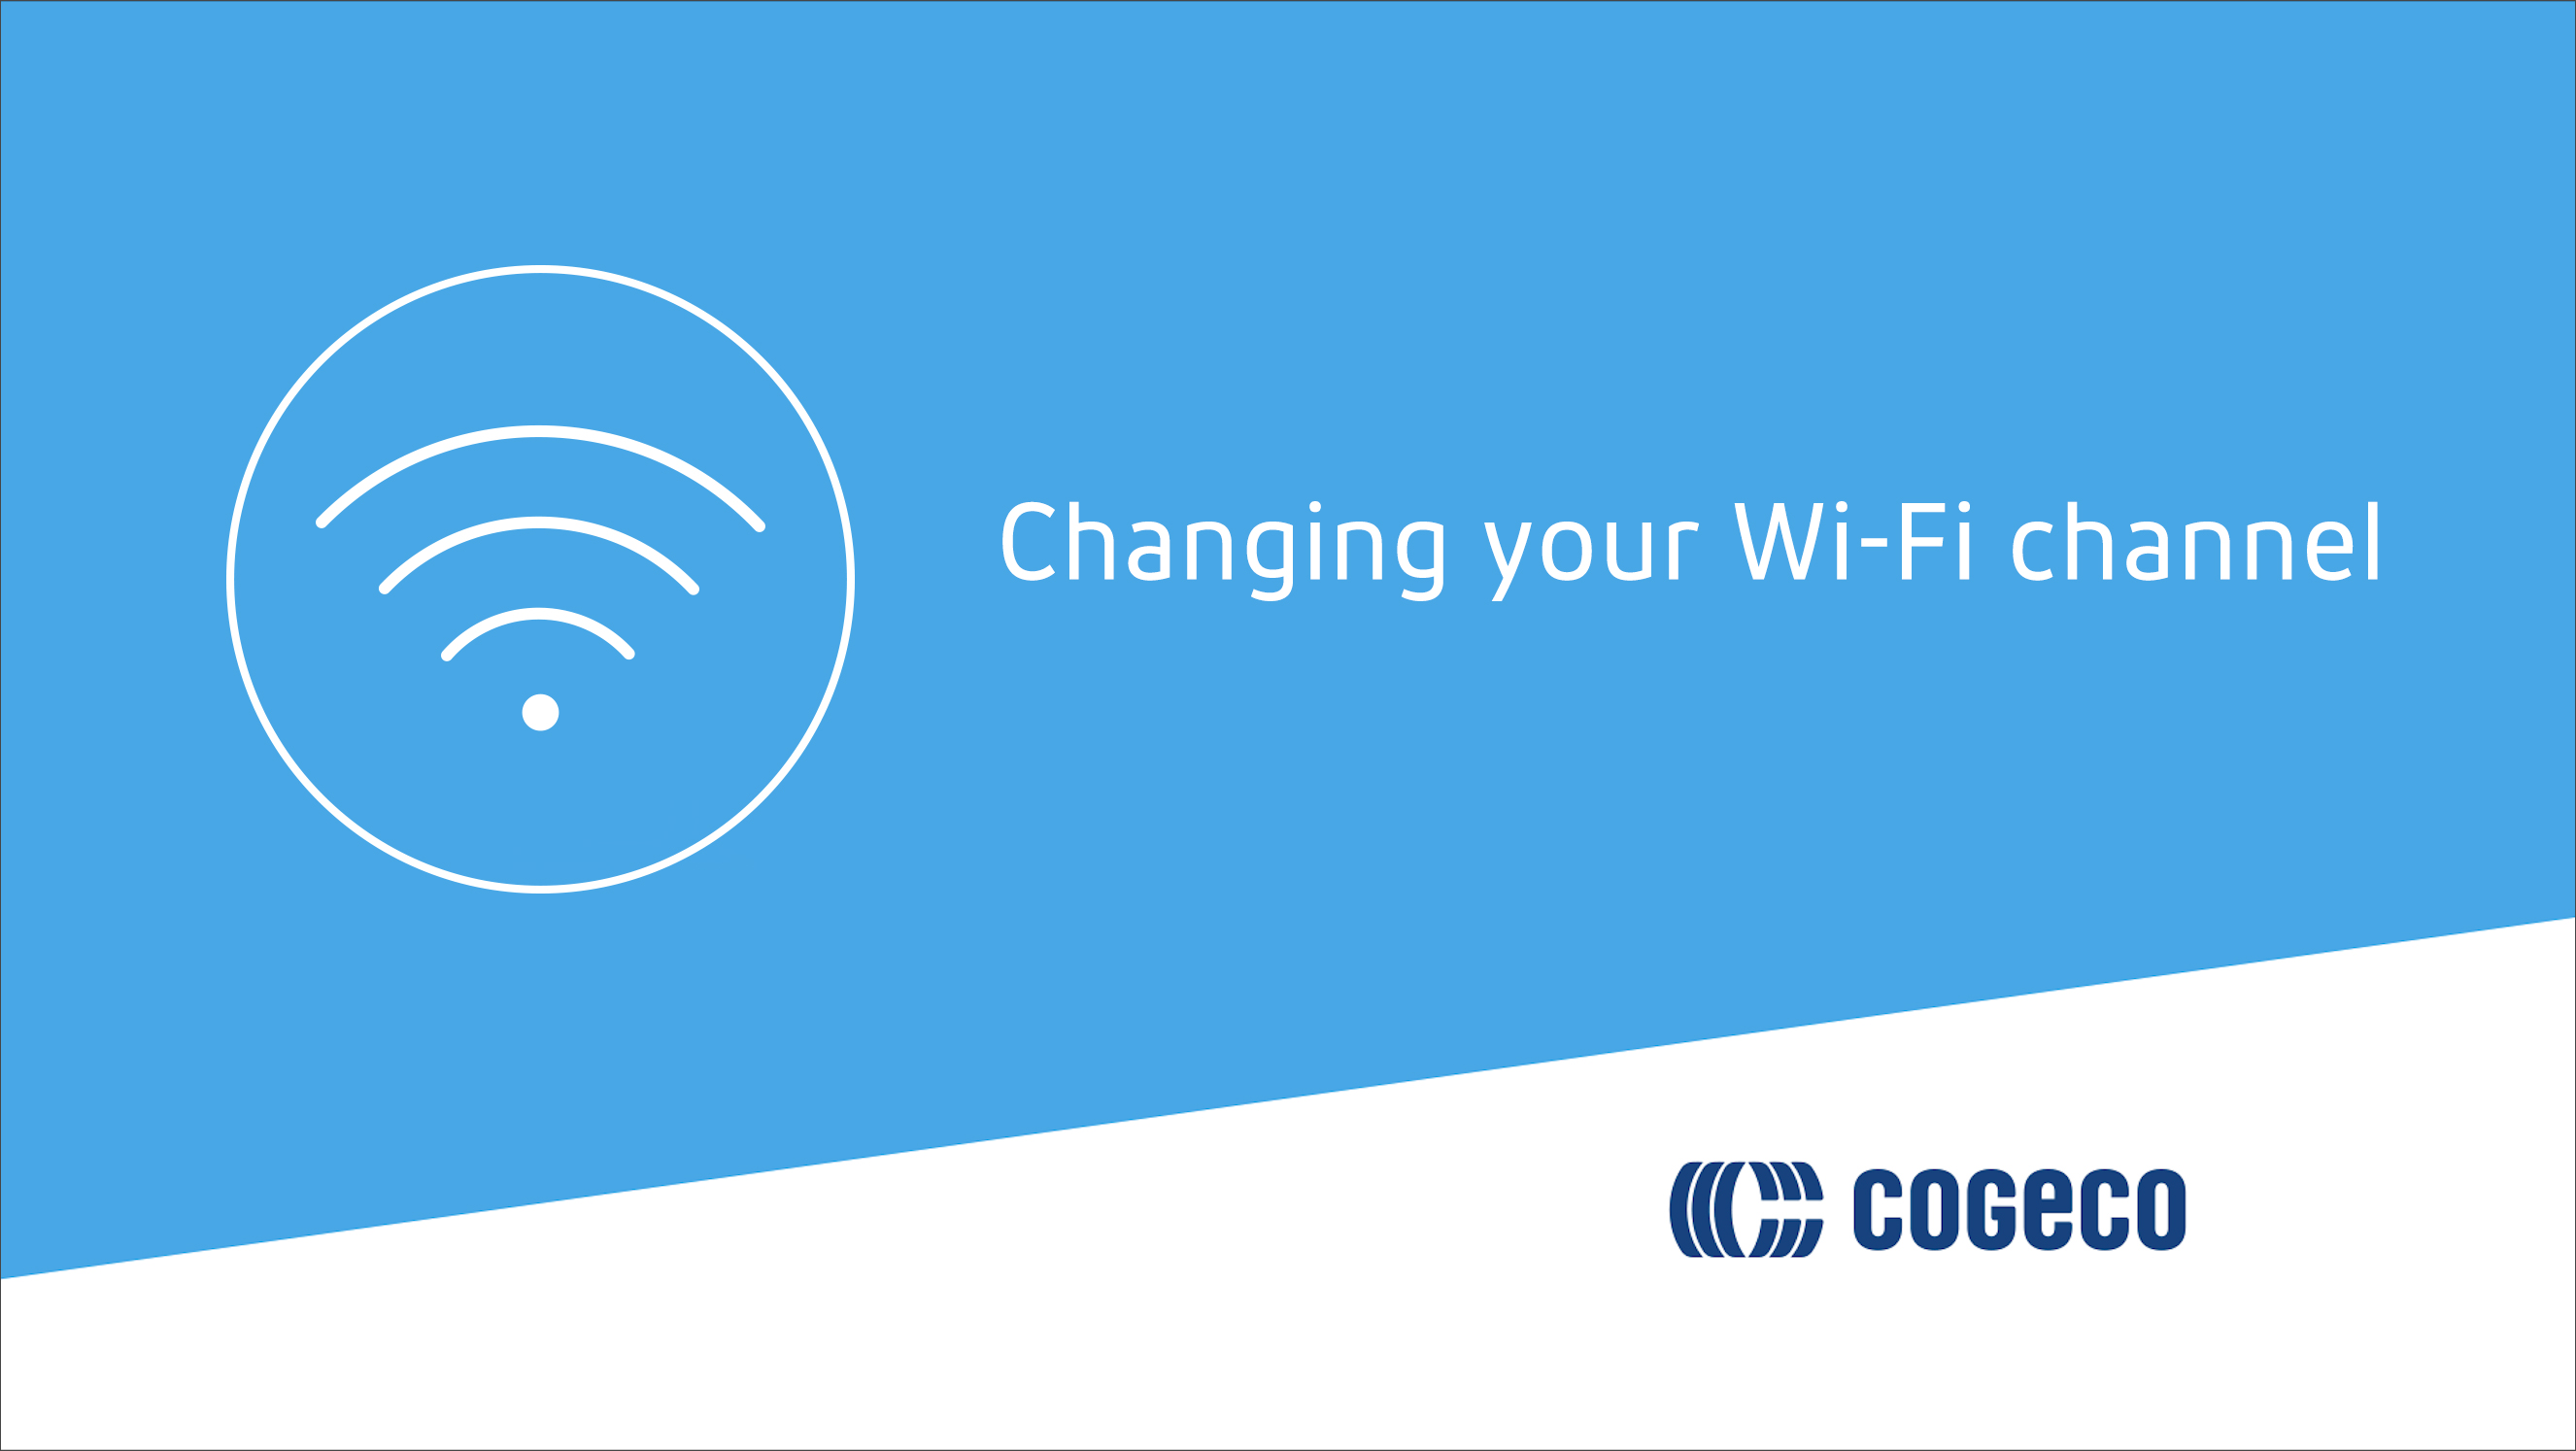 Changing your WI-FI channel